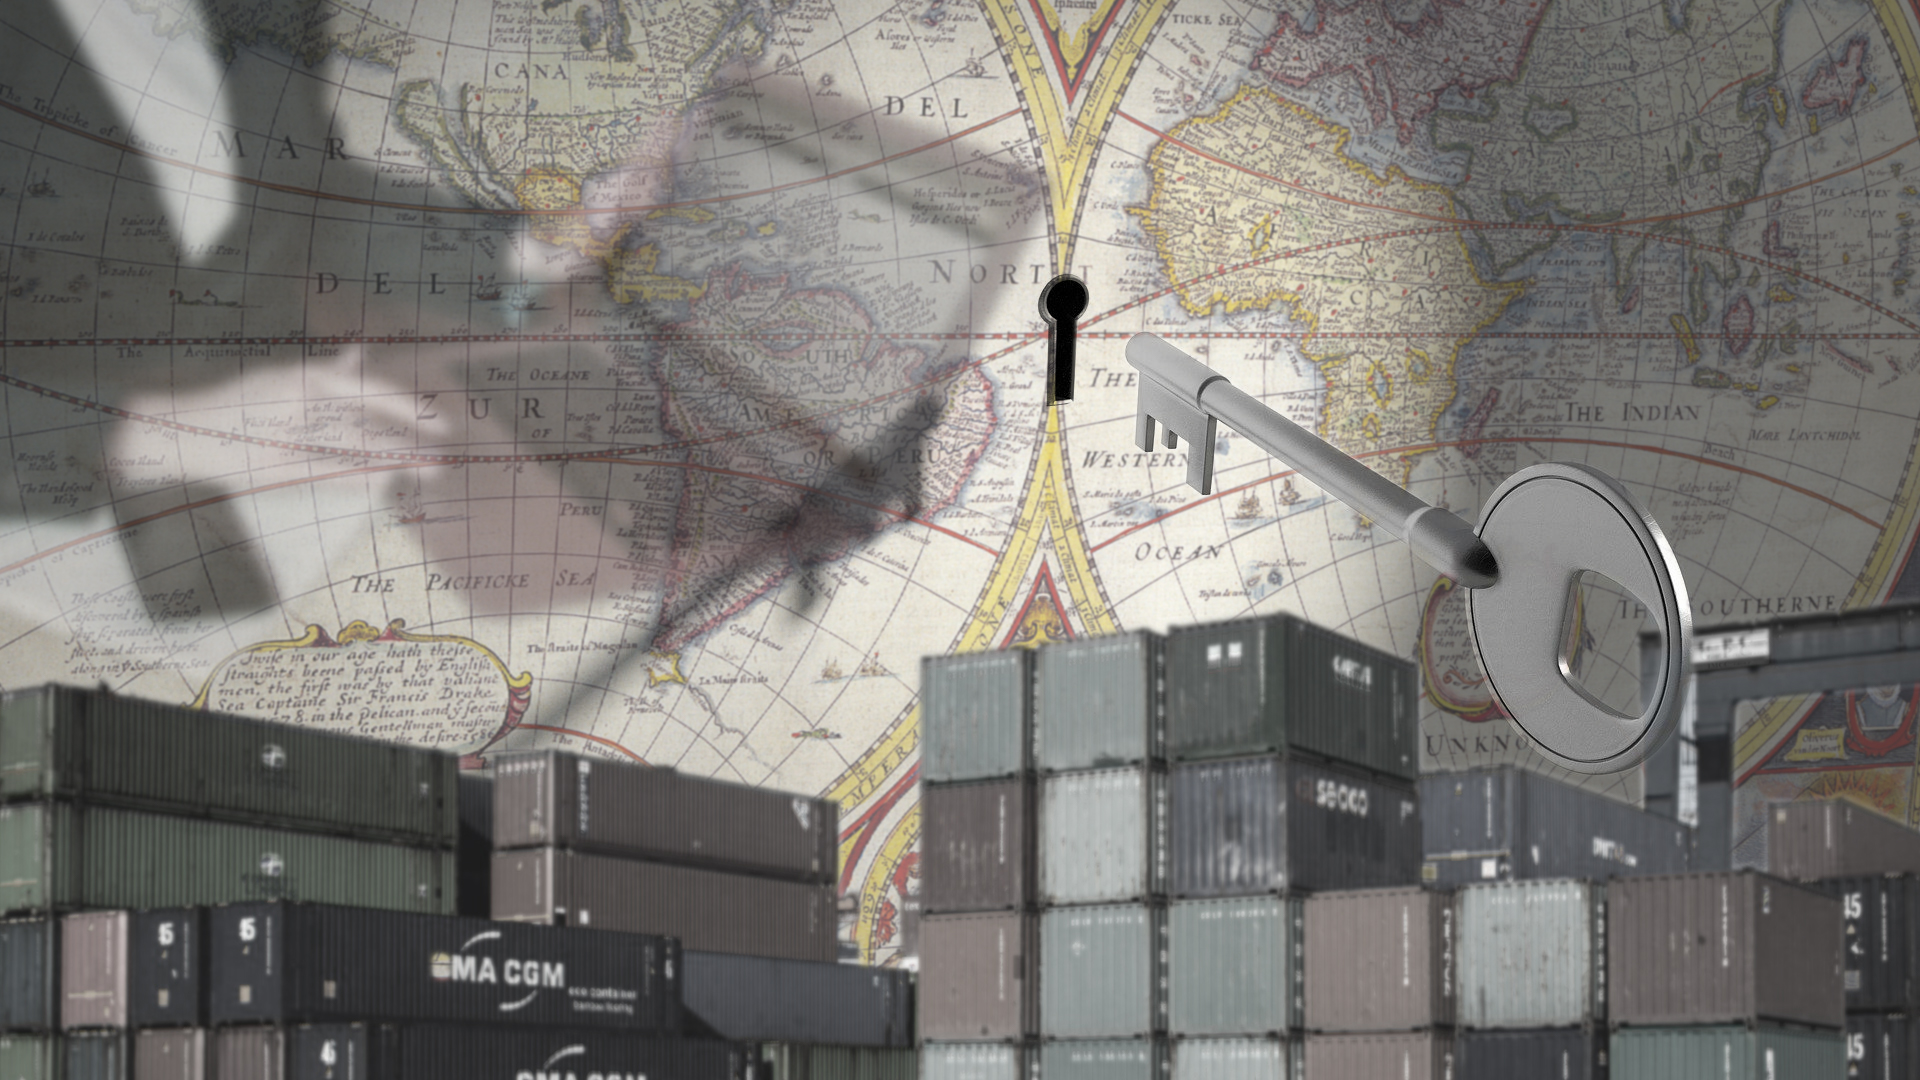 Embedded global trade expertise for your business